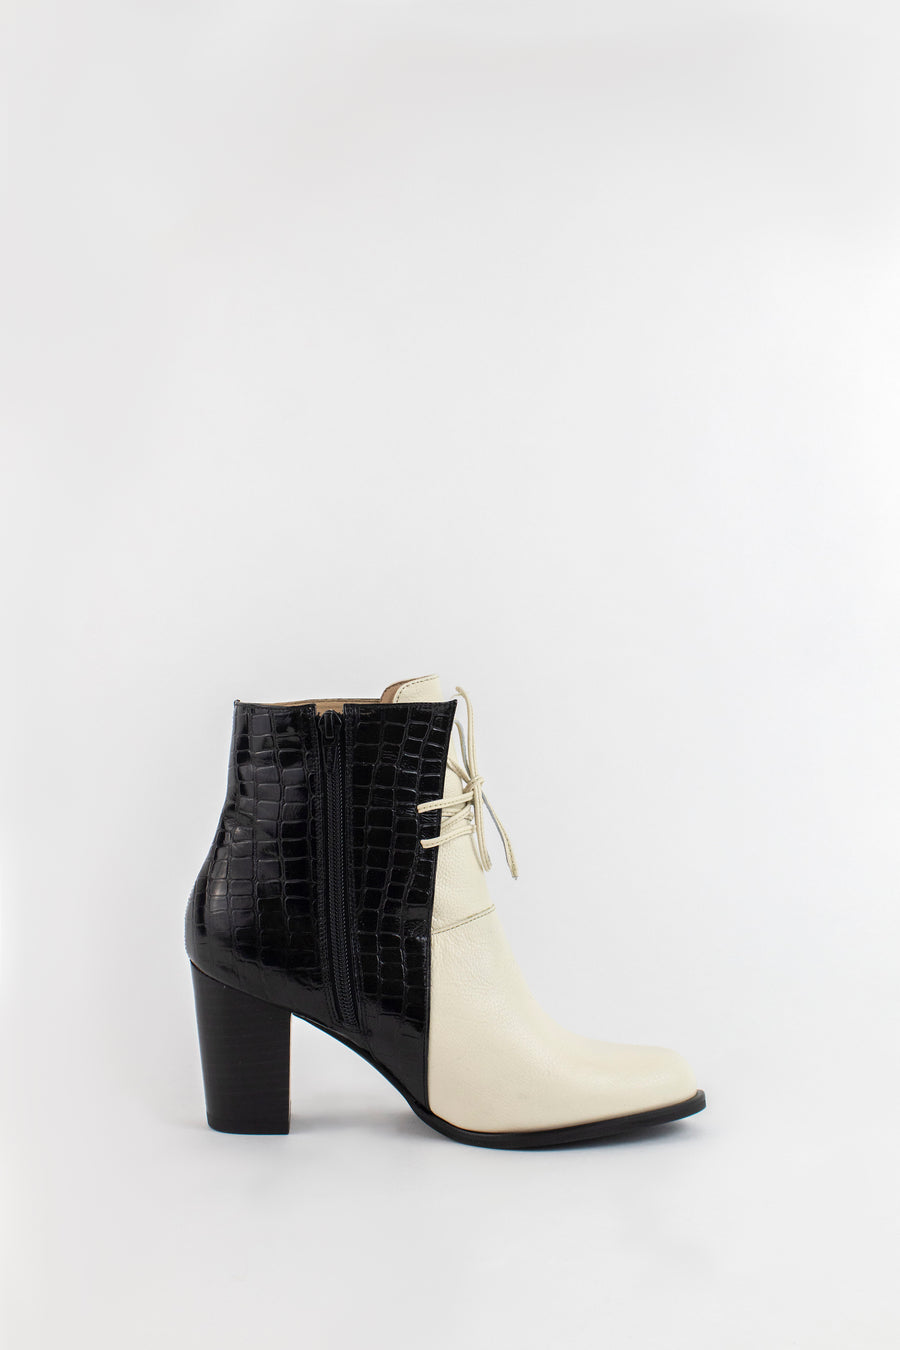 Lisbon ankle booties in ivory leather with black croc embossed cattle leather